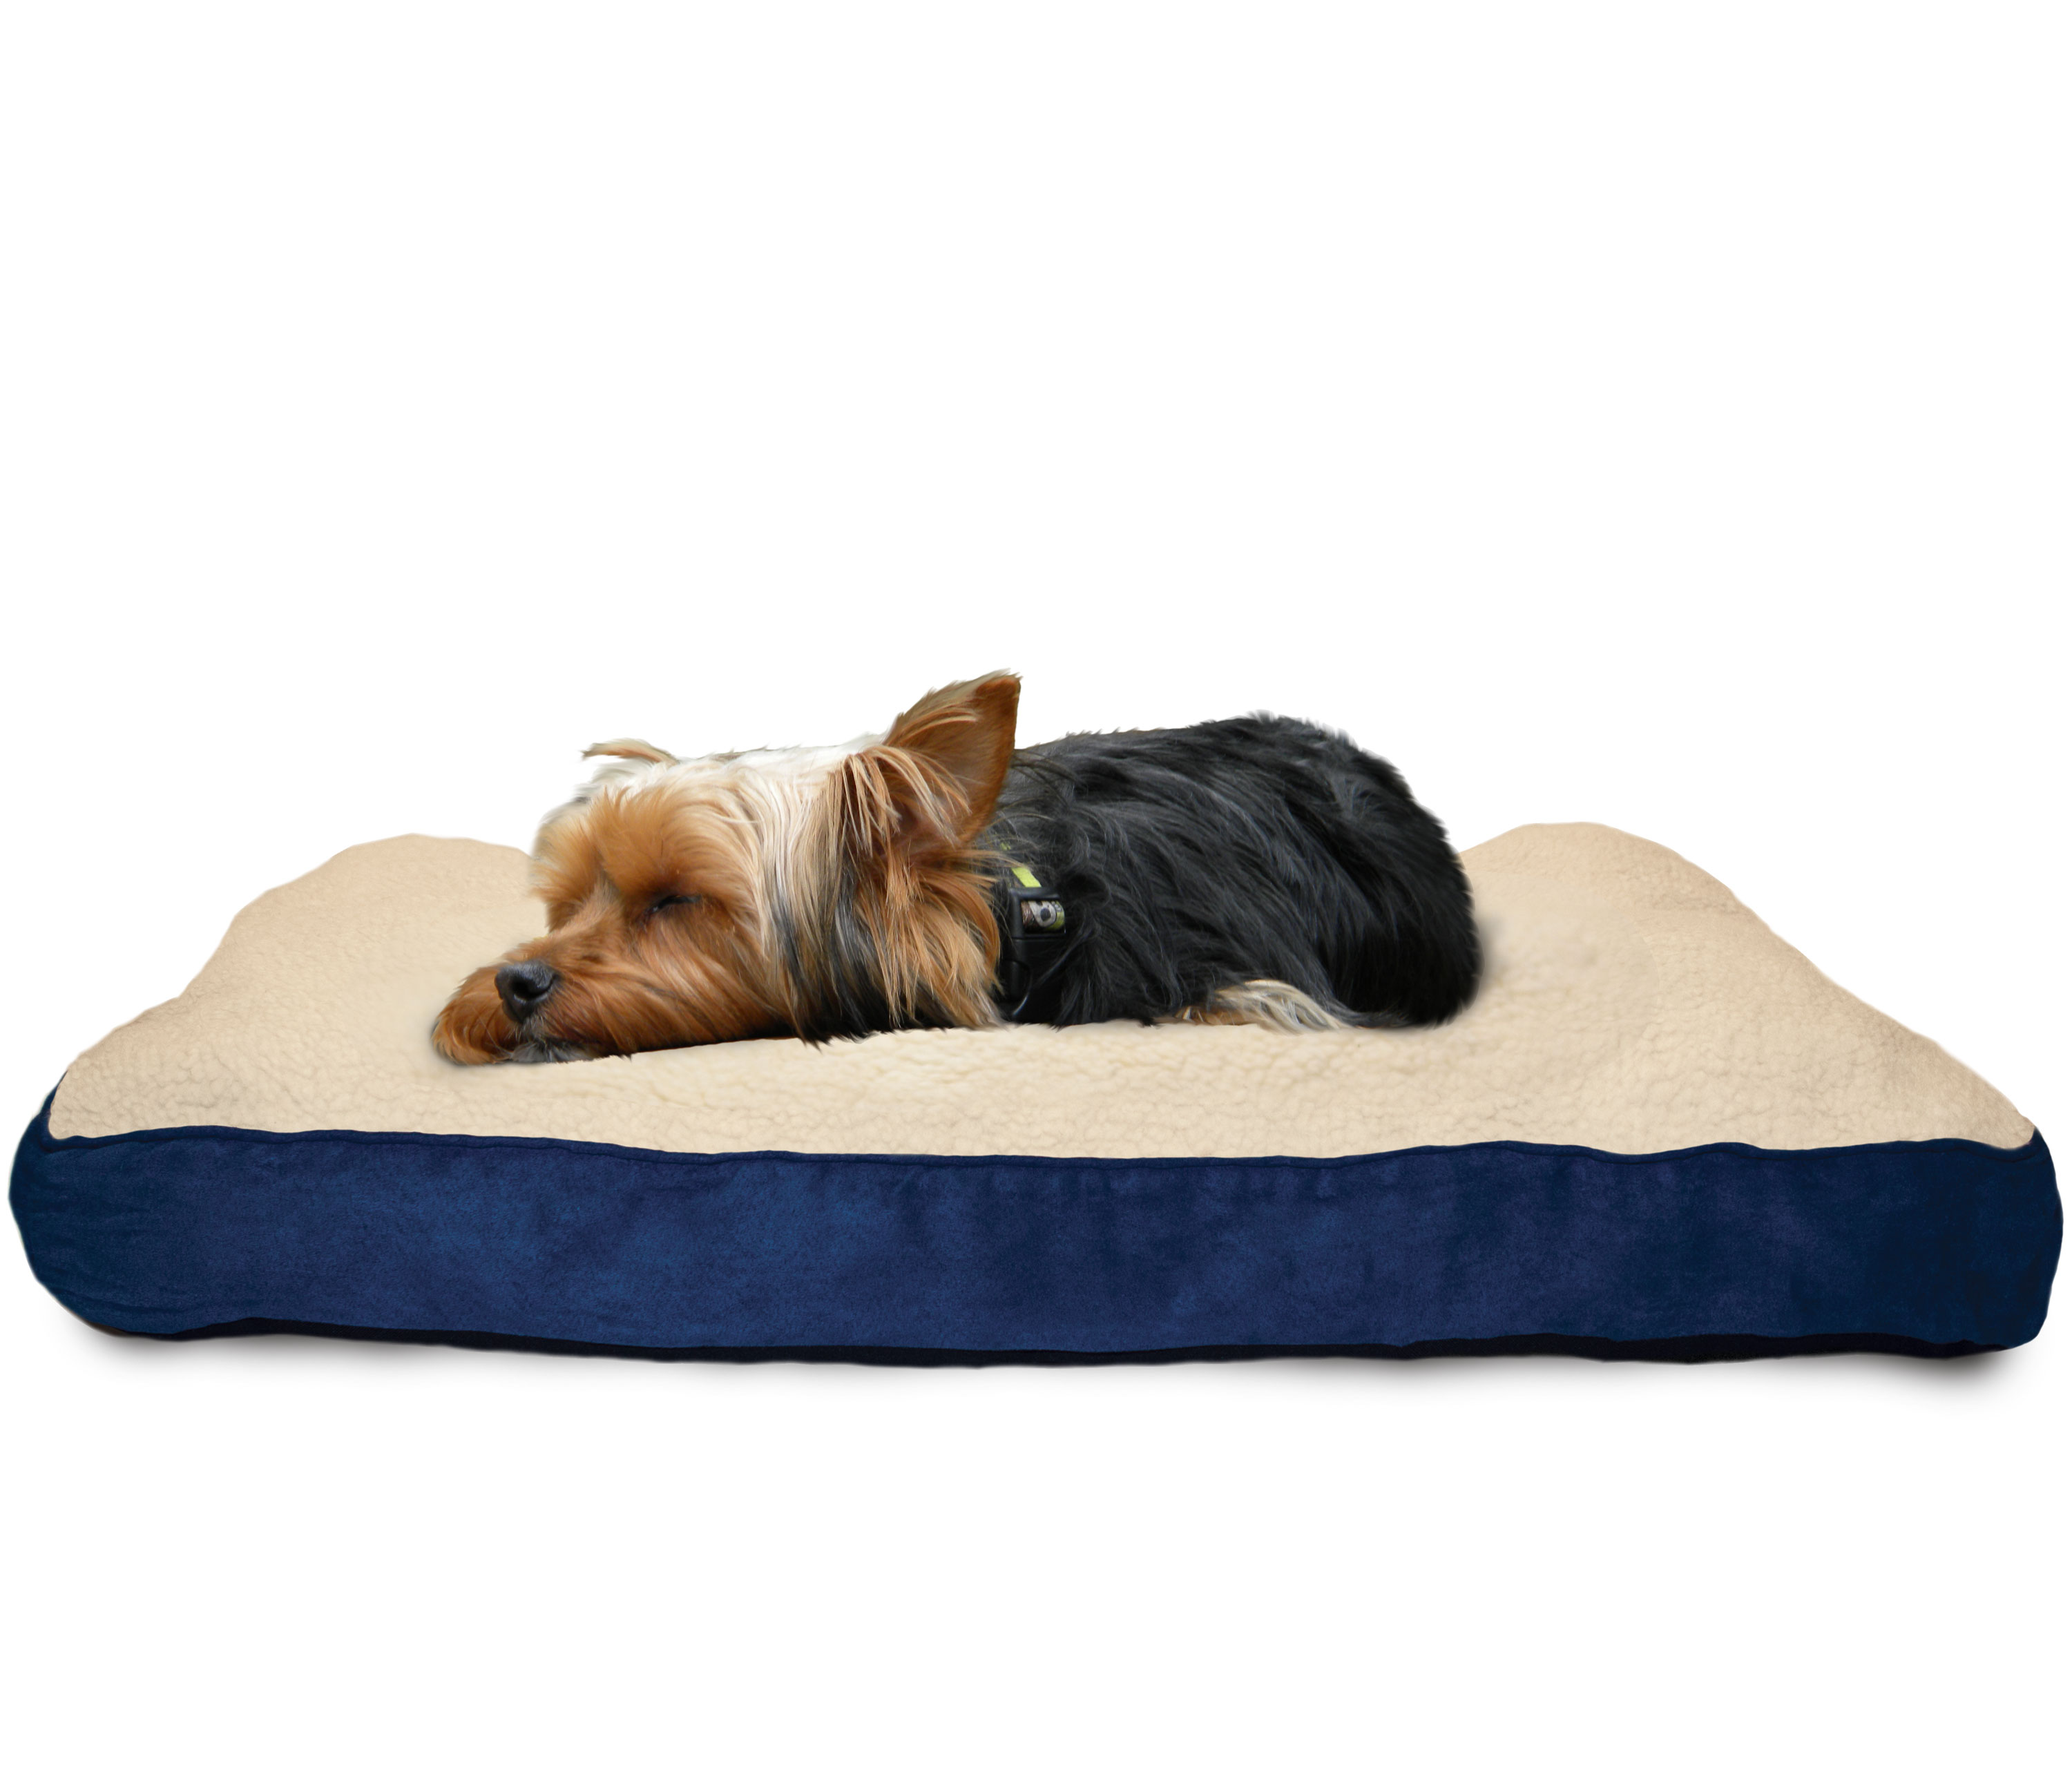 Furhaven Pet Nap Deluxe Pillow Pet Bed For Dogs Ebay